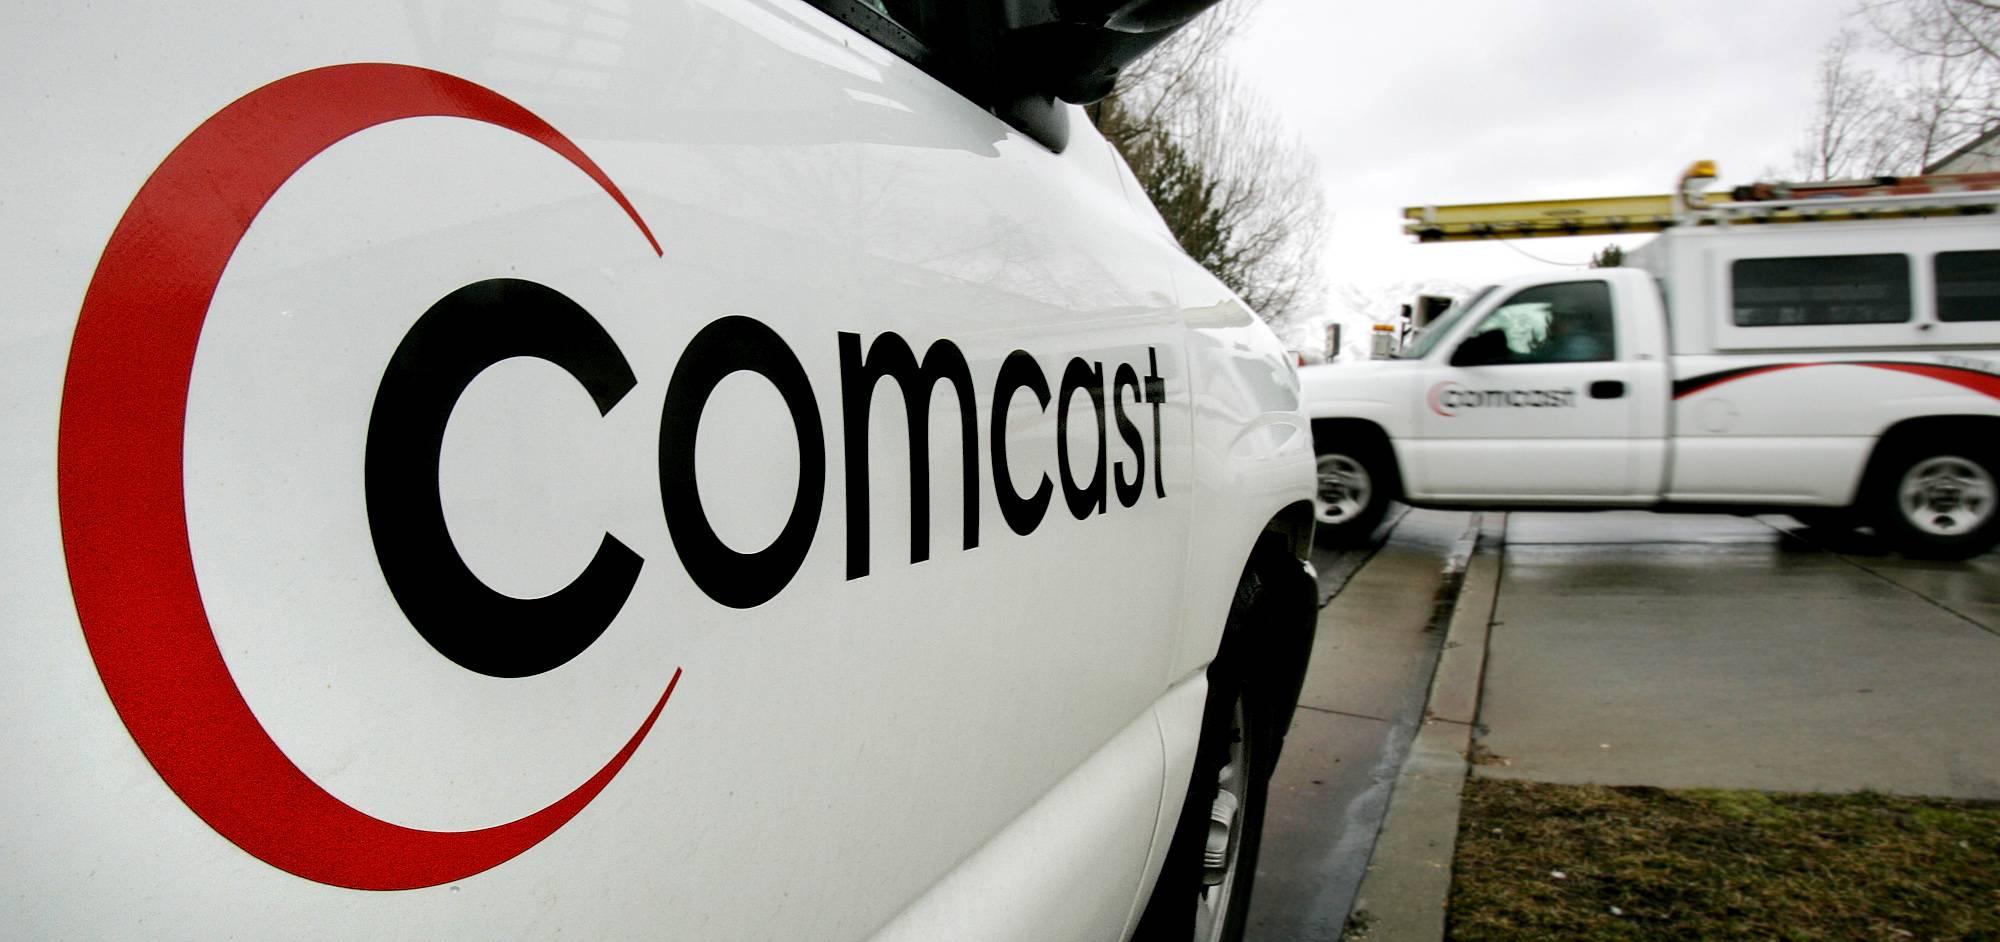 His Internet was too slow. So he set up a robot to pester Comcast about it.